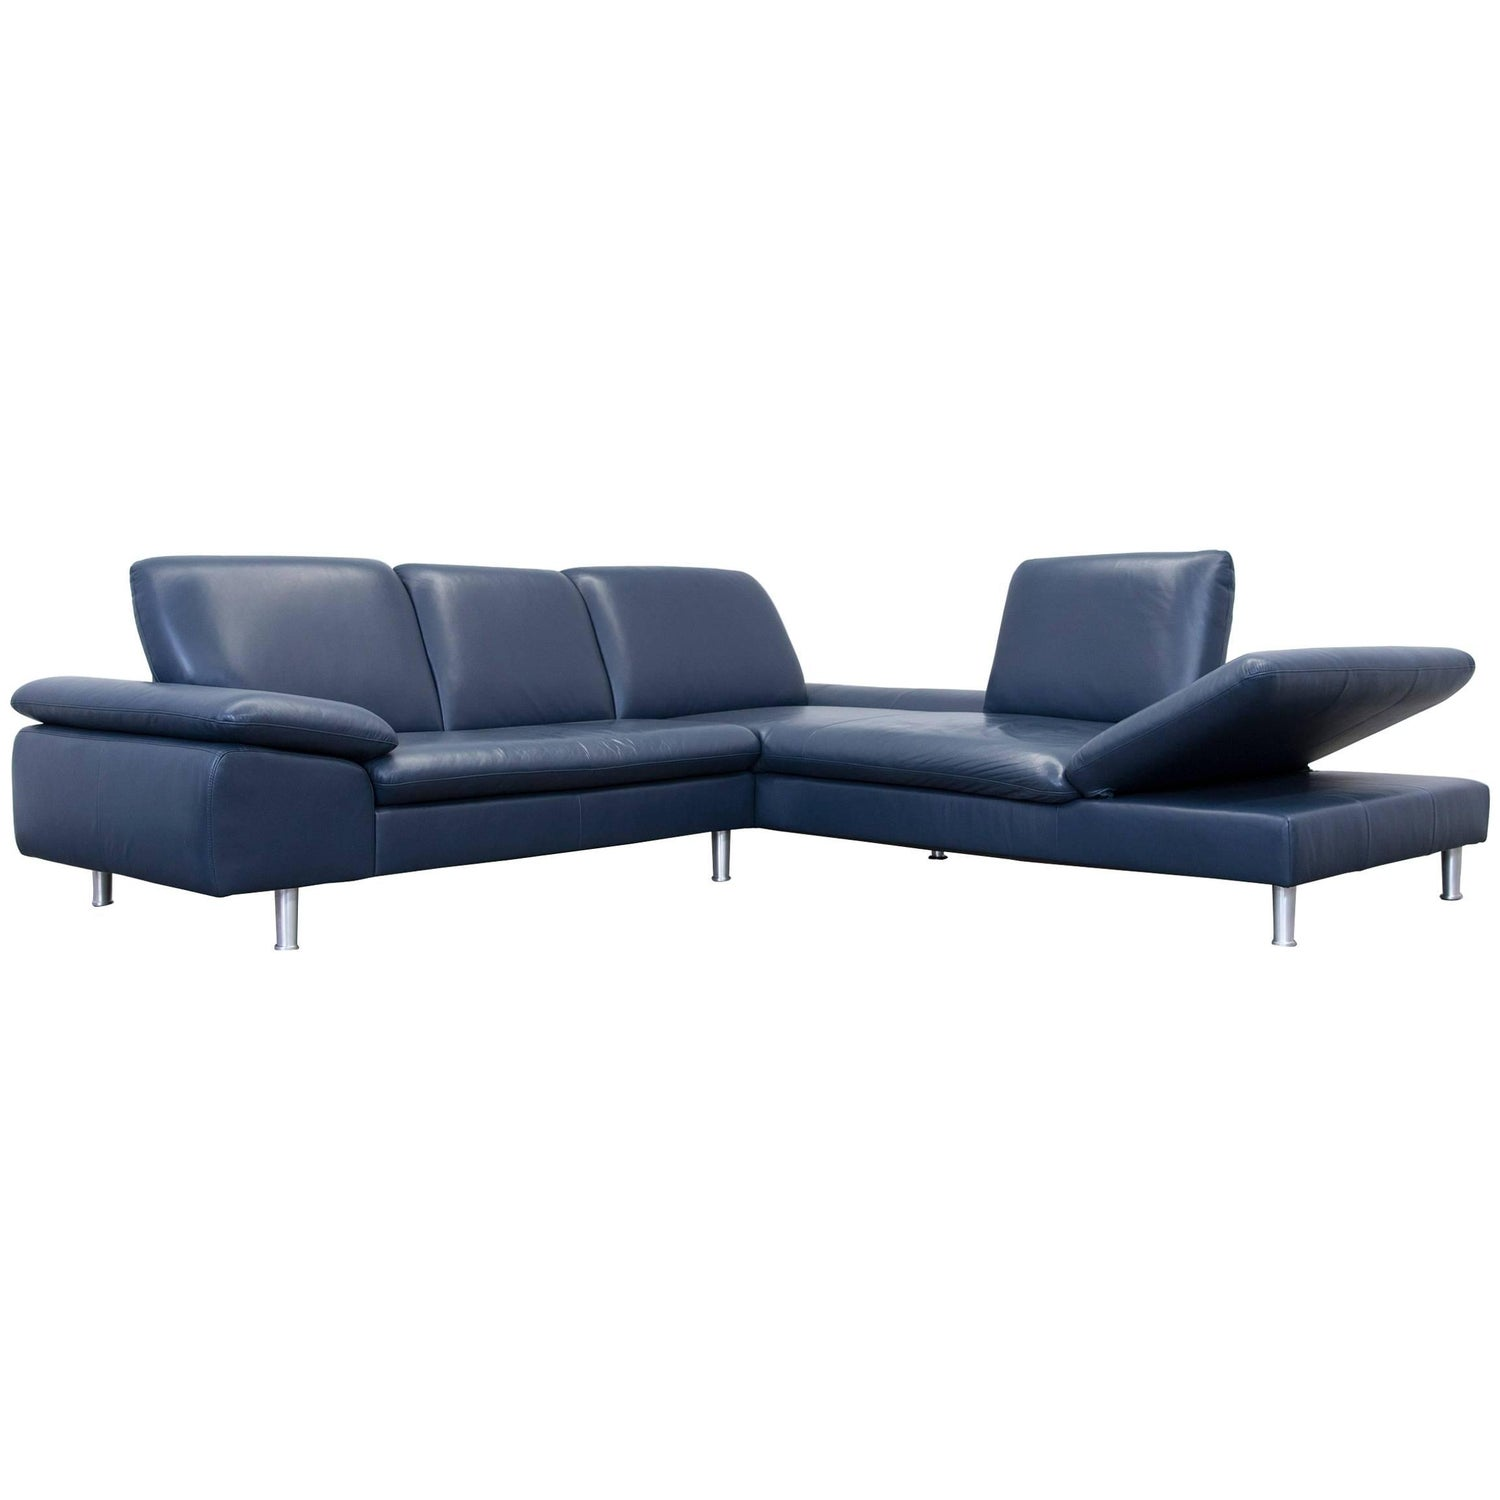 Willi Schillig Designer Corner Sofa Leather Blue Function Couch